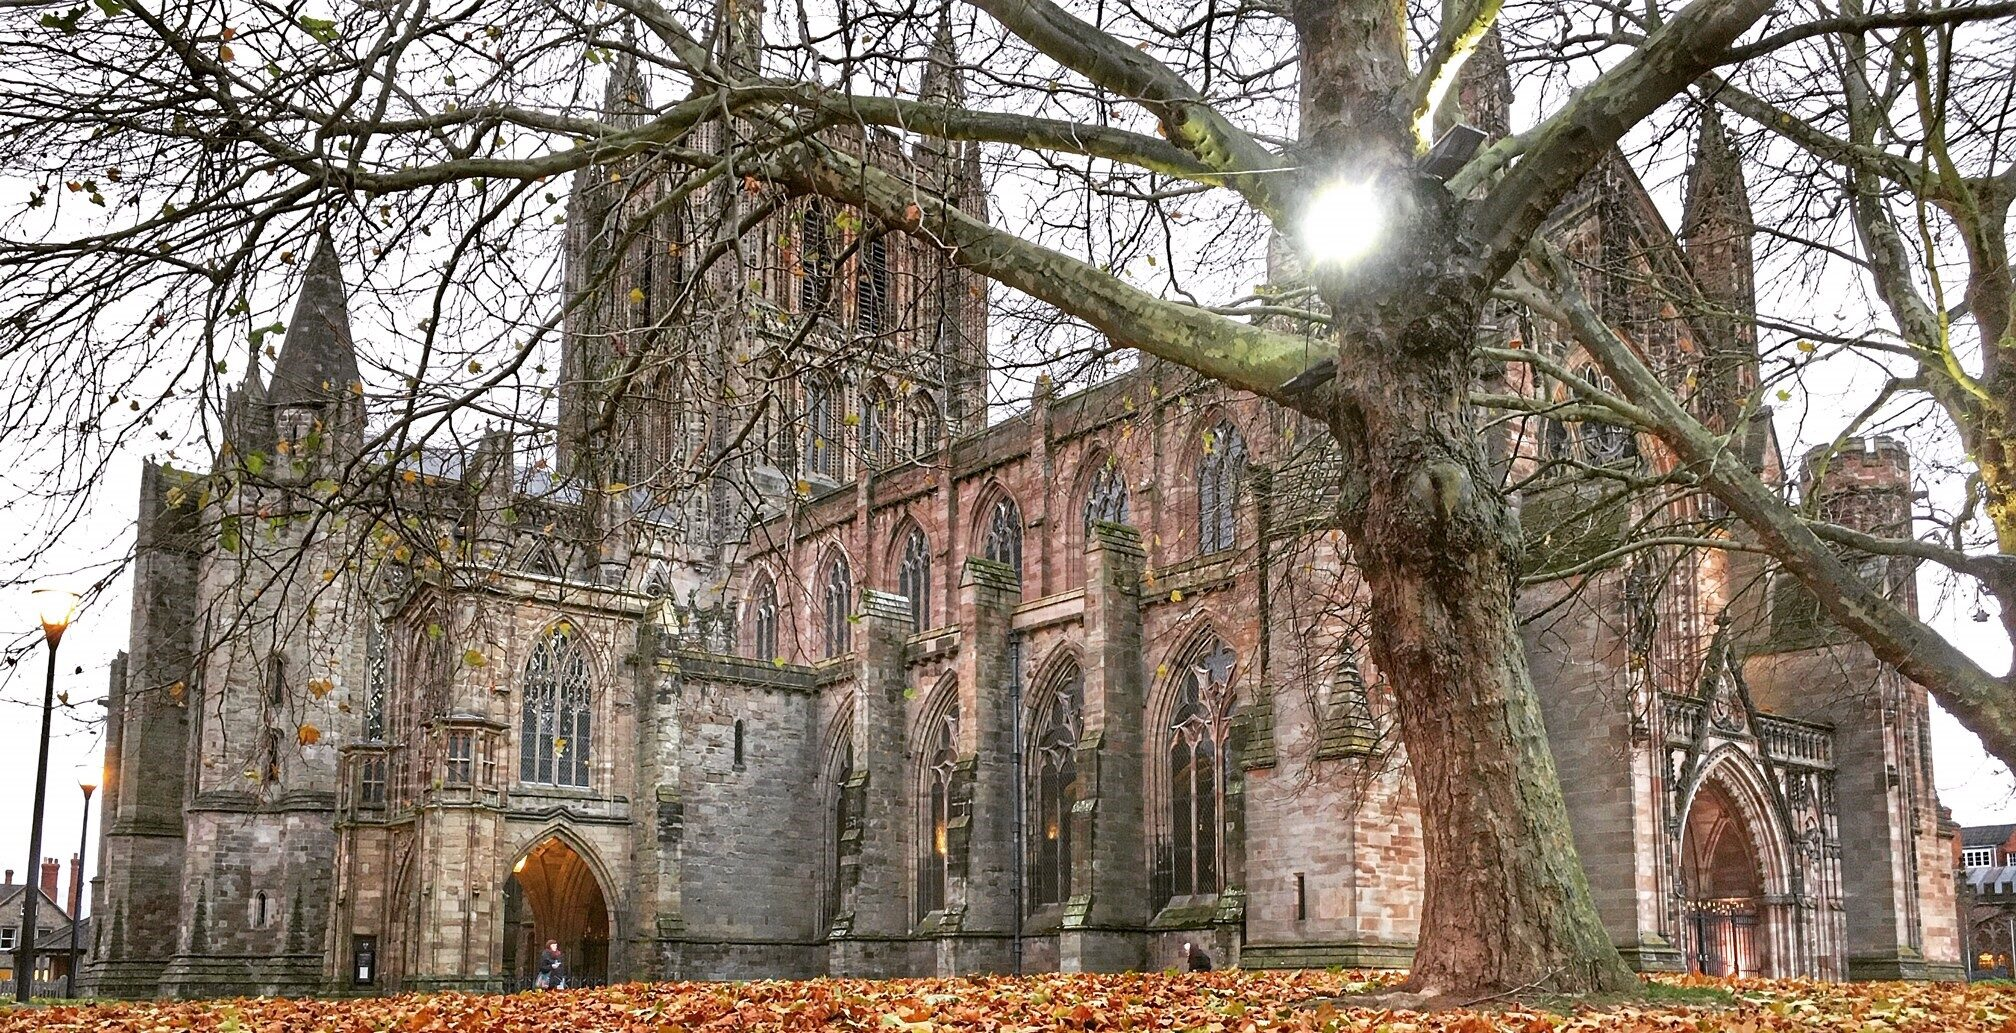 CATHEDRAL & LEAVES